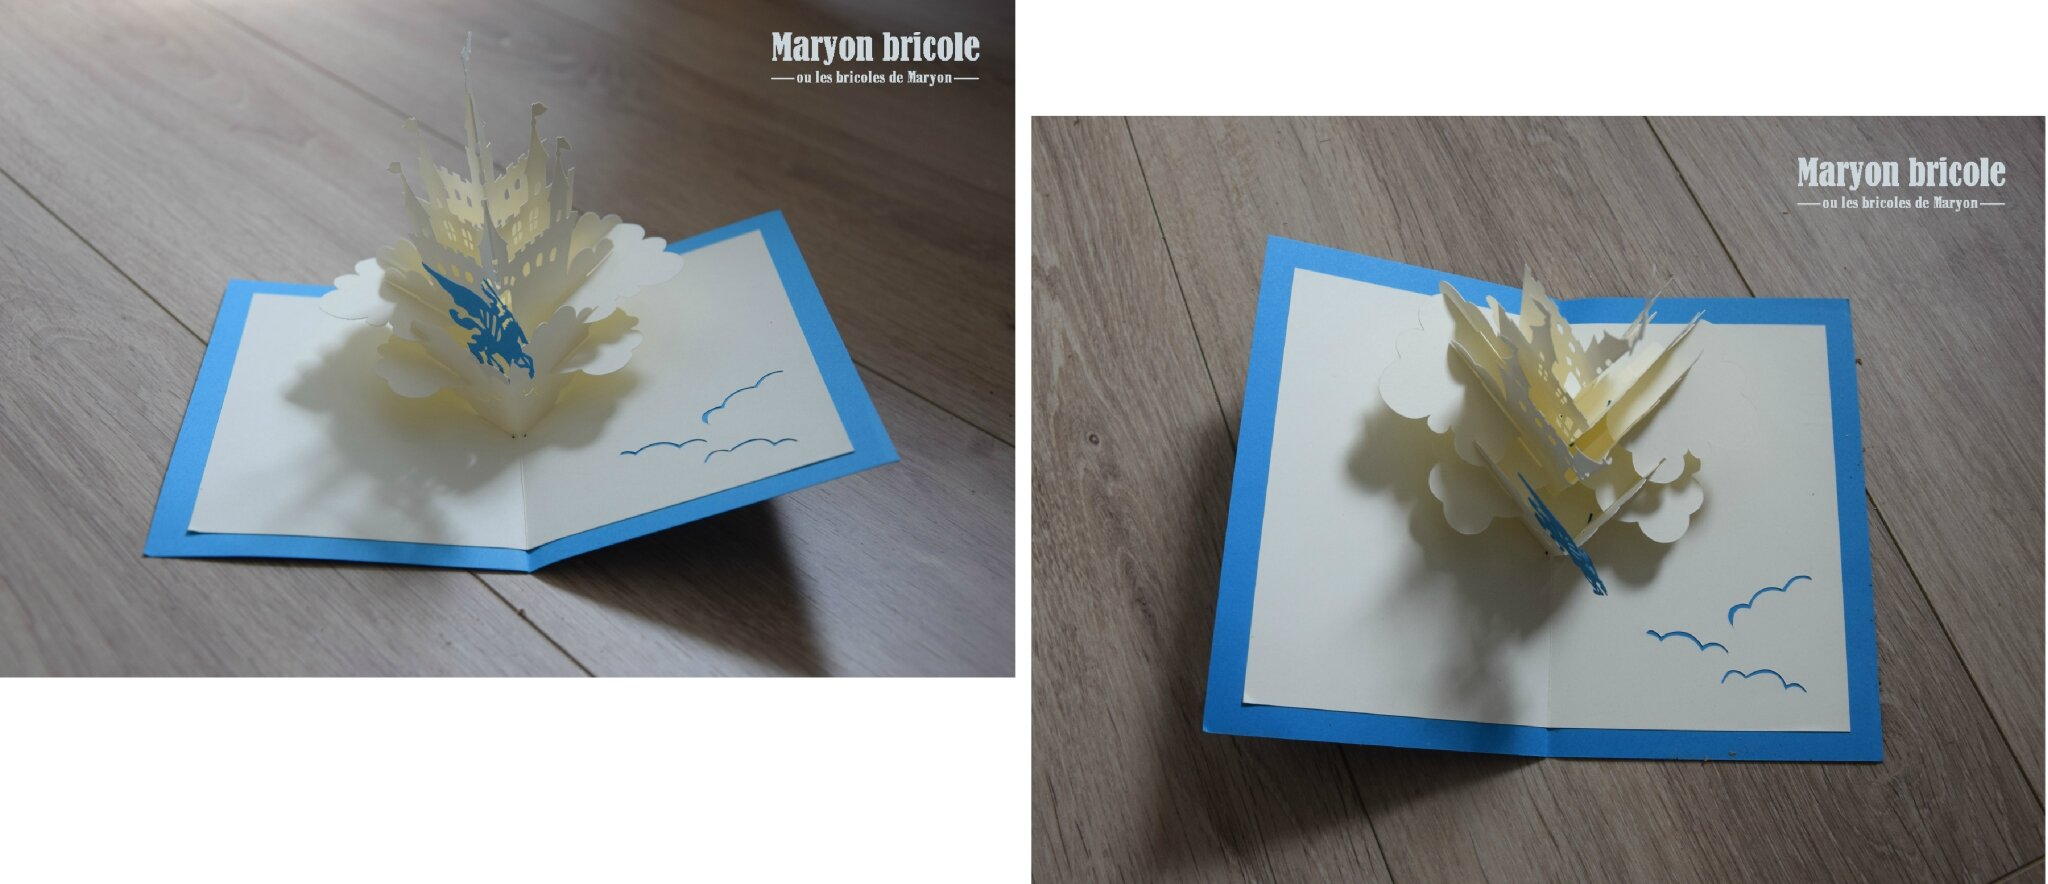 Cartes de voeux 3d pop up tous les messages sur cartes de voeux 3d pop up maryon bricole - Carte de voeux pop up ...